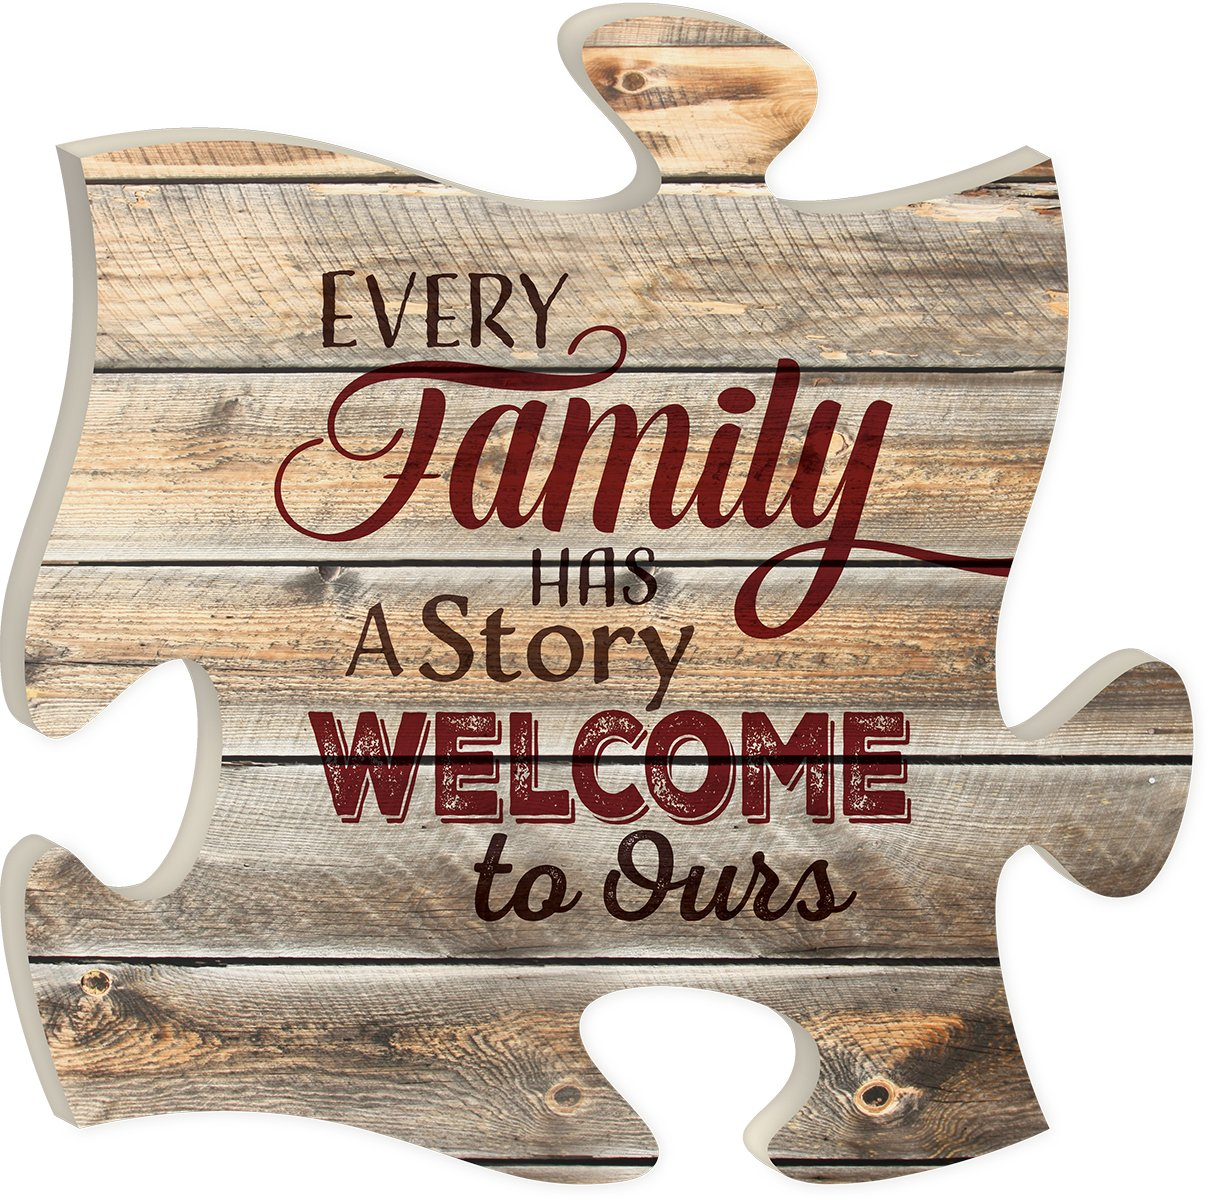 Every Family Has a Story 12 x 12 inch Wood Puzzle Piece Wall Sign Plaque P. Graham Dunn PUF0220